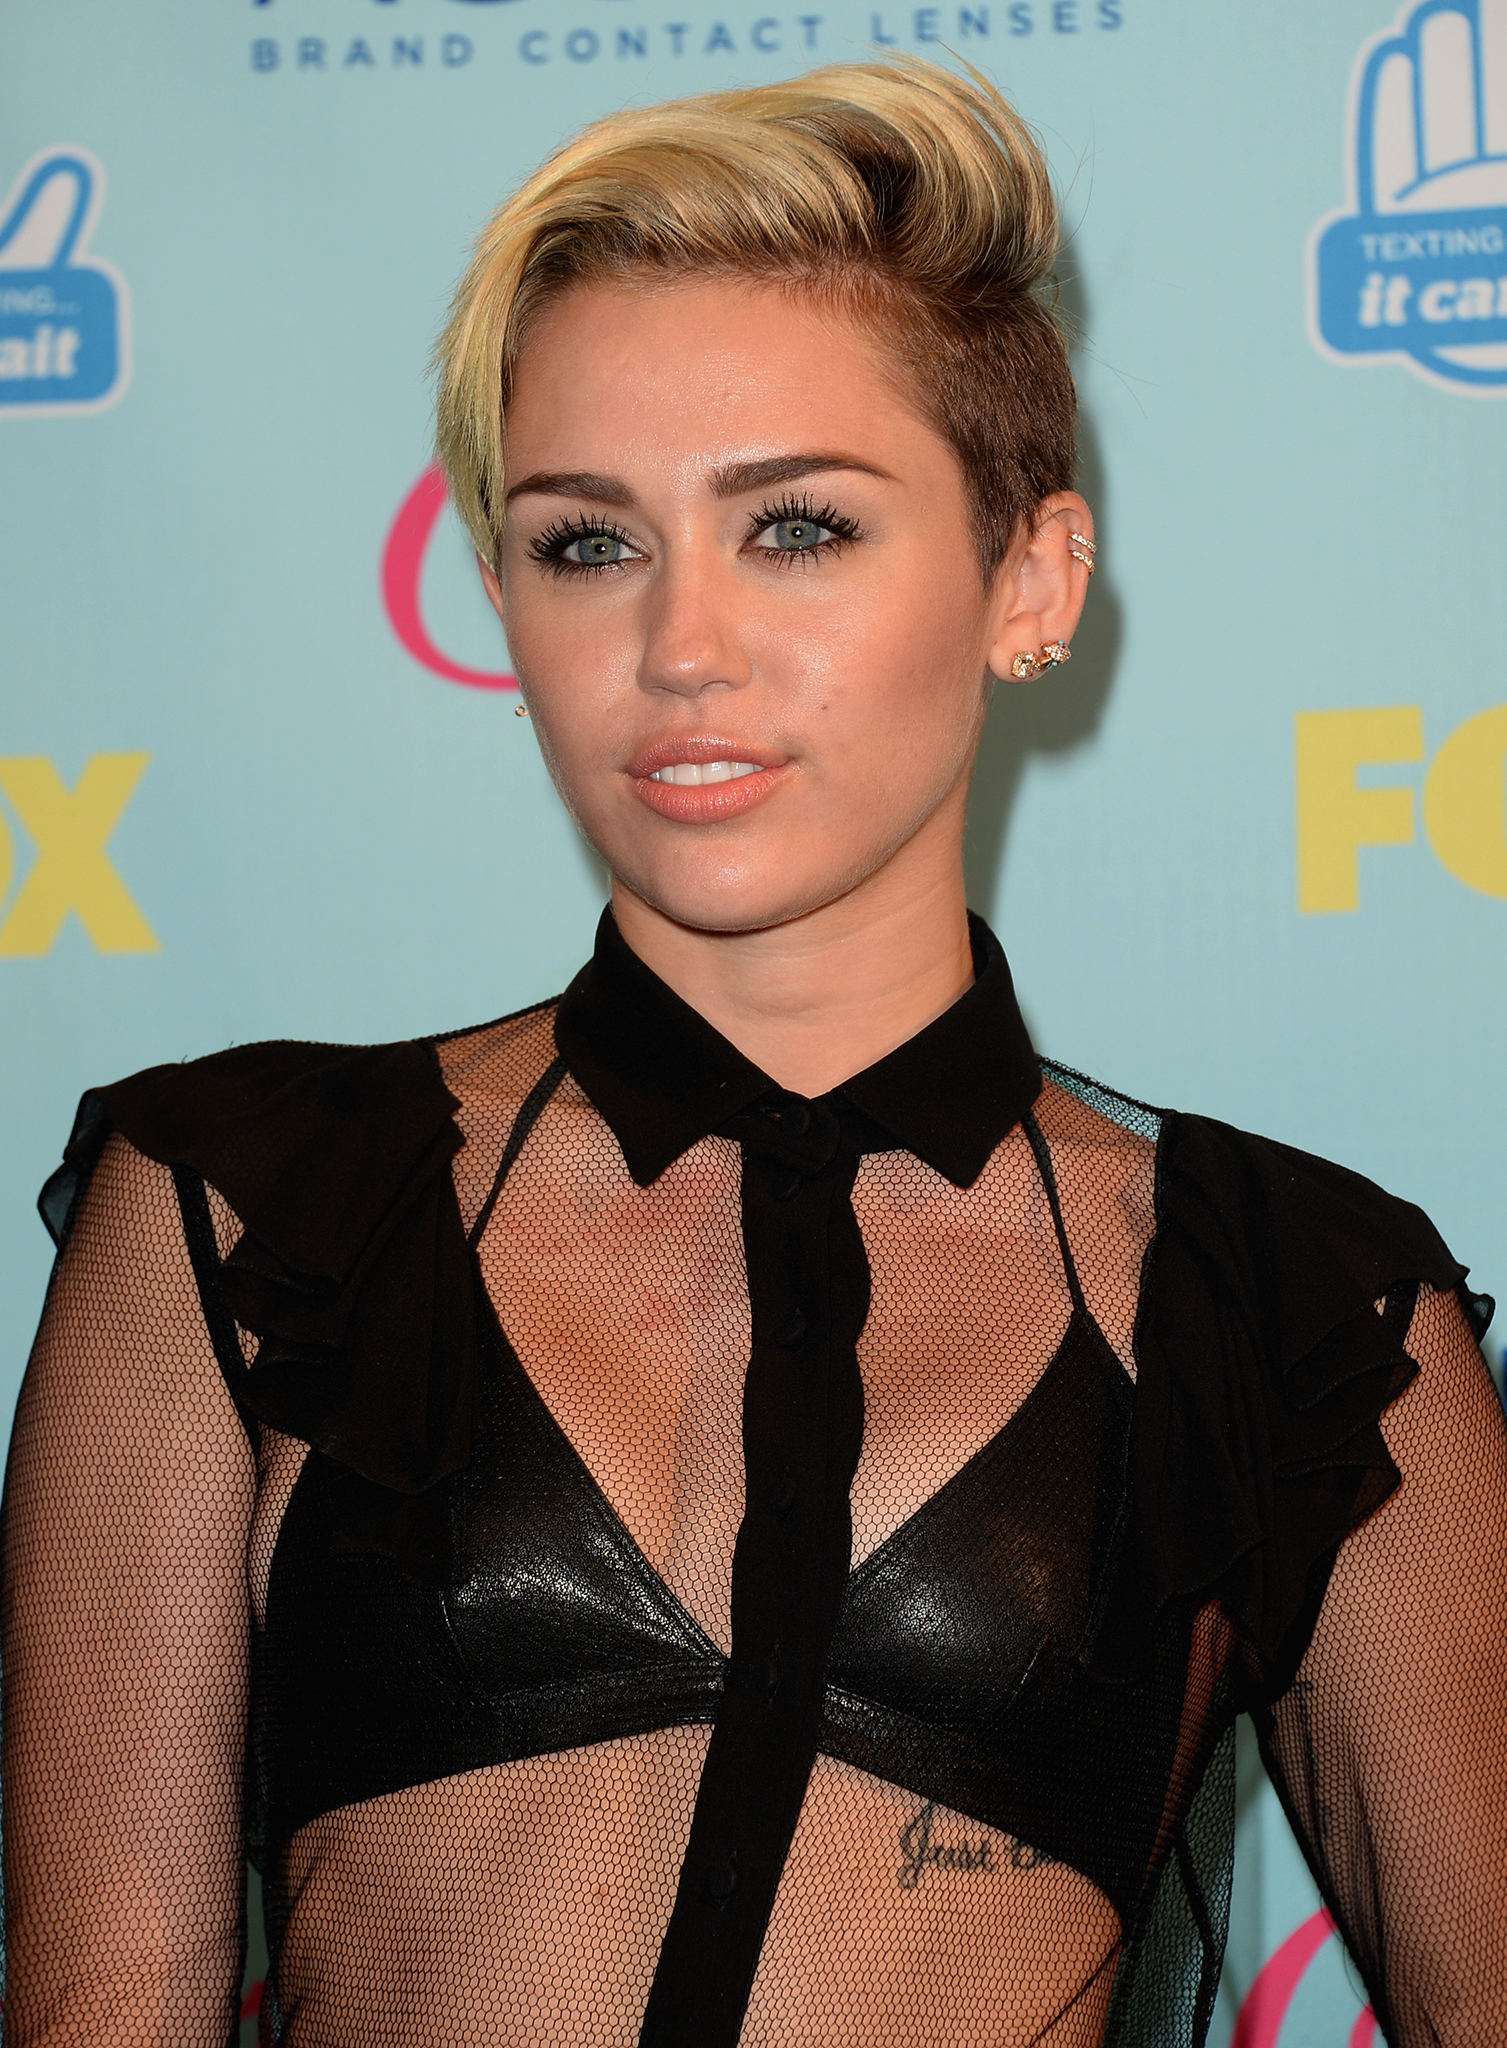 Miley Cyrus is tired of her short hair. (Getty Images)